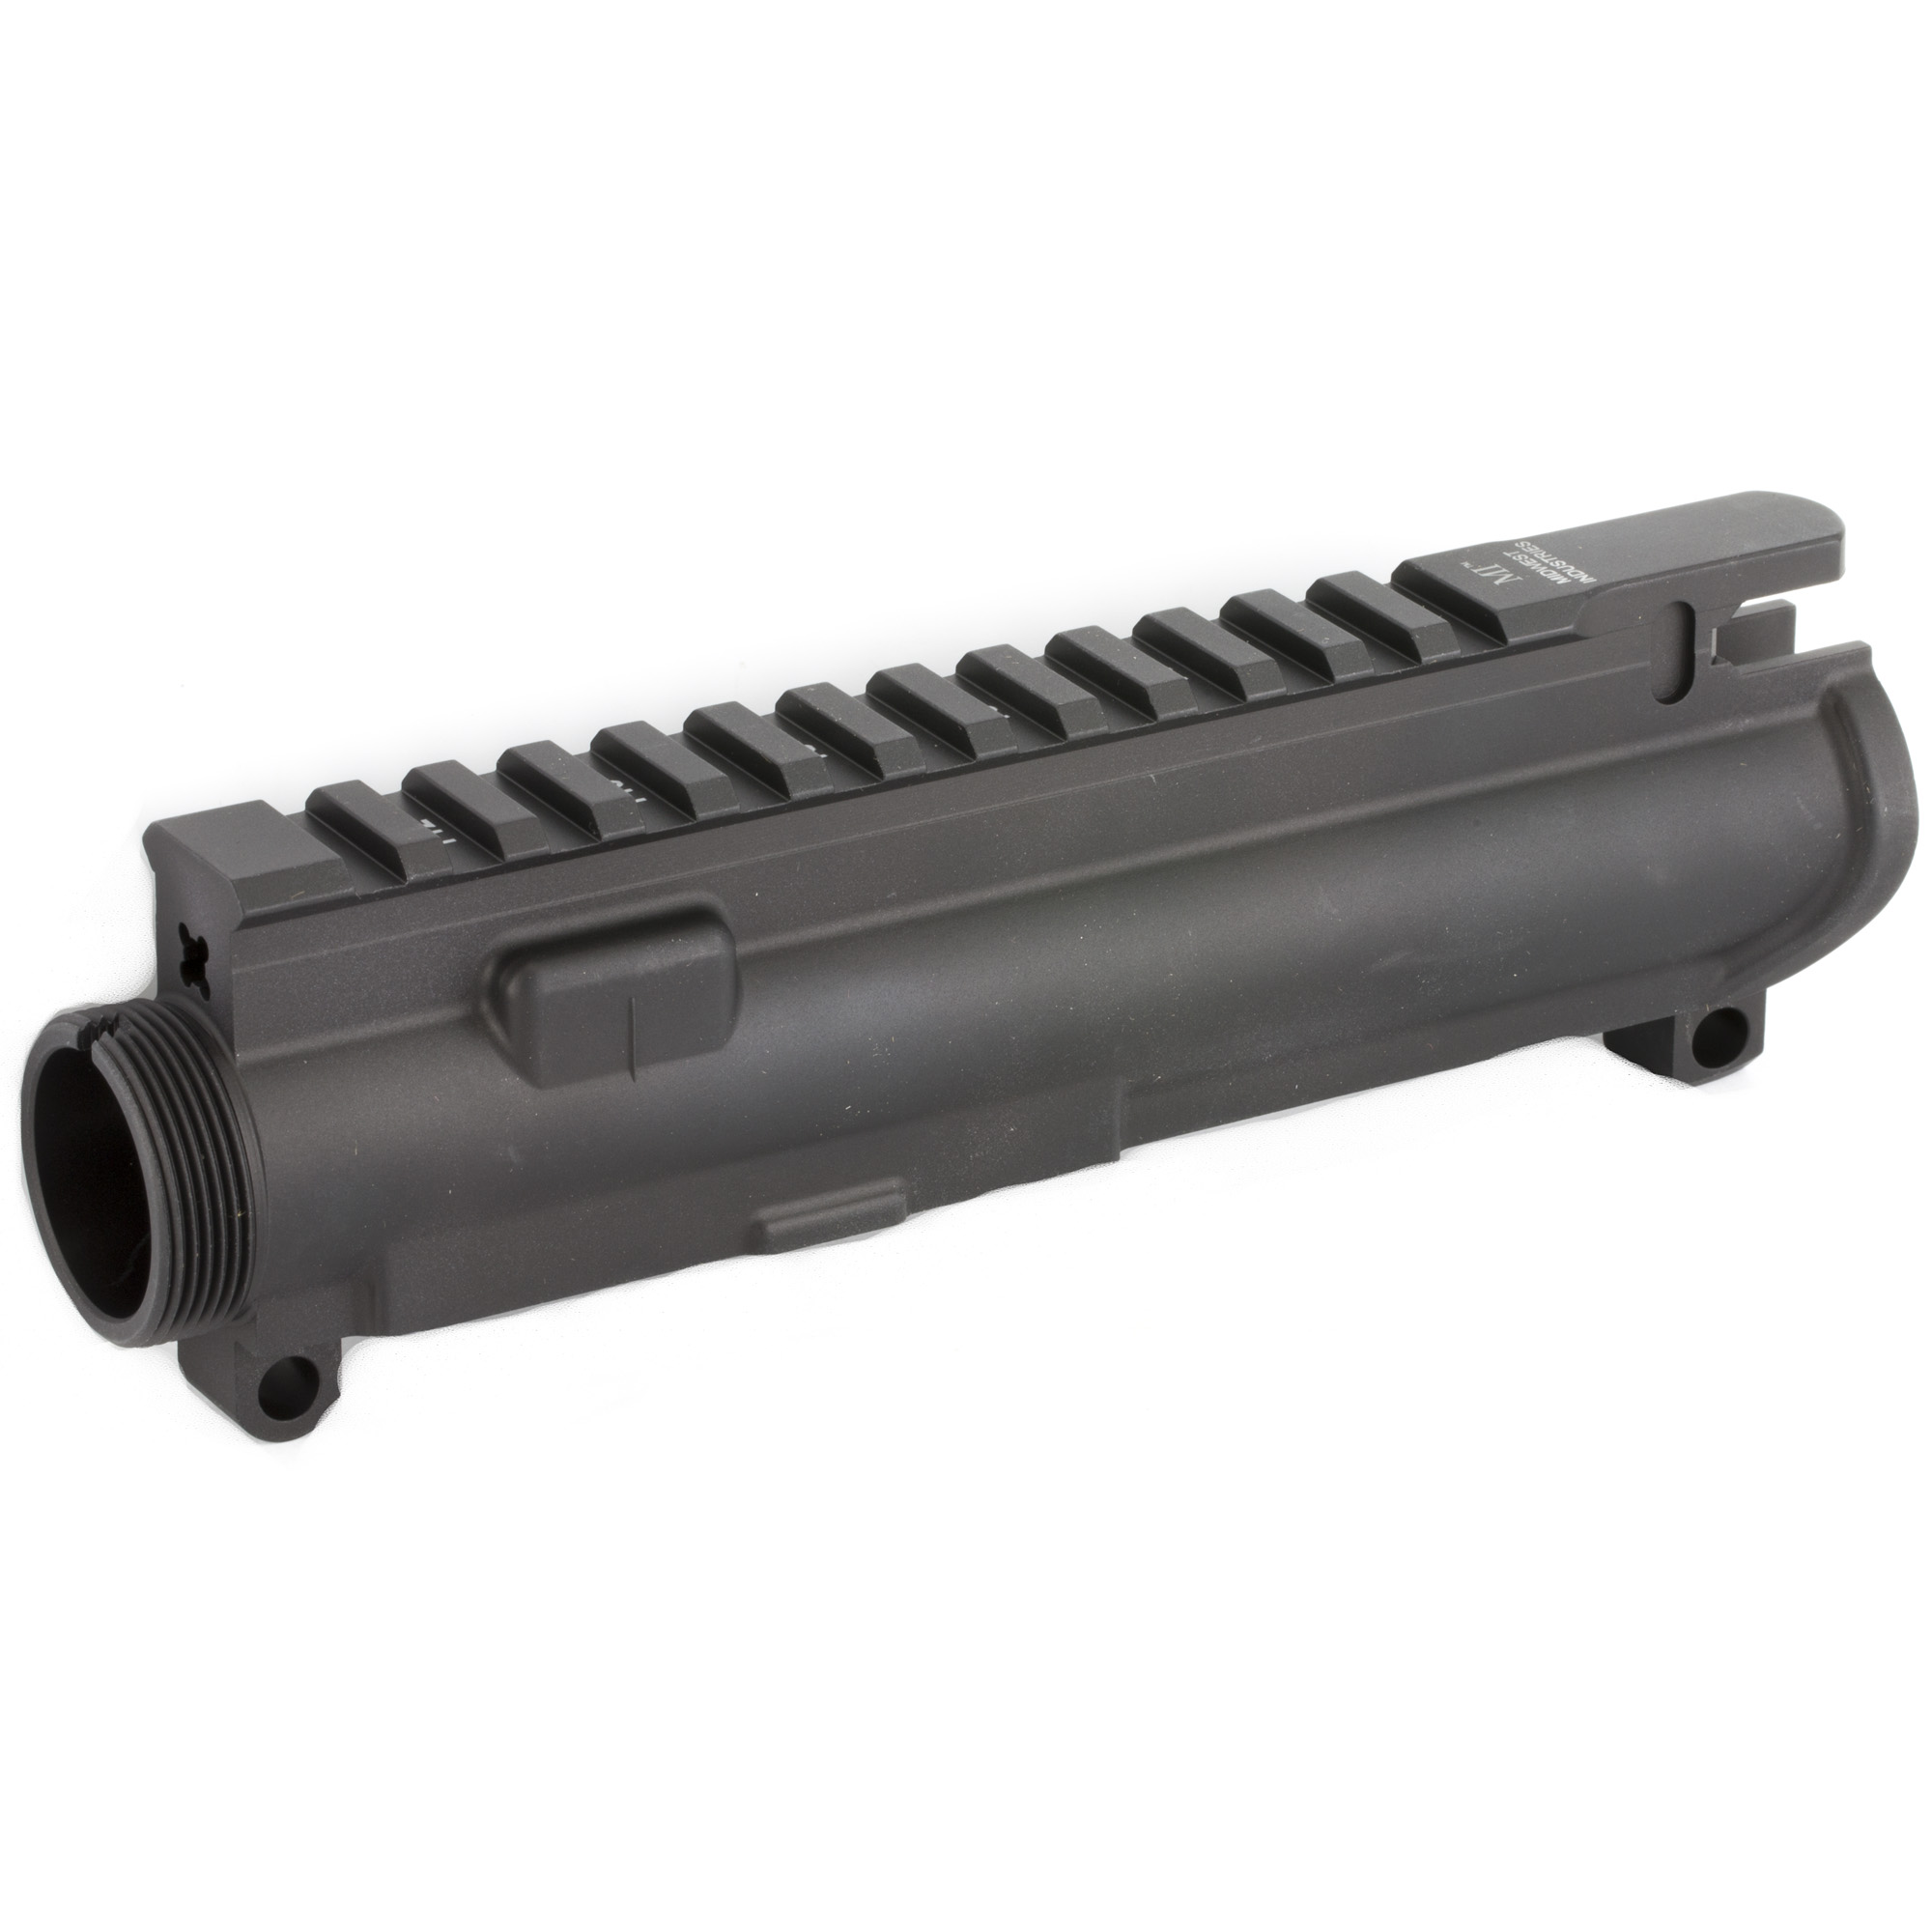 "Midwest Industries Forged AR Upper"" Complete"